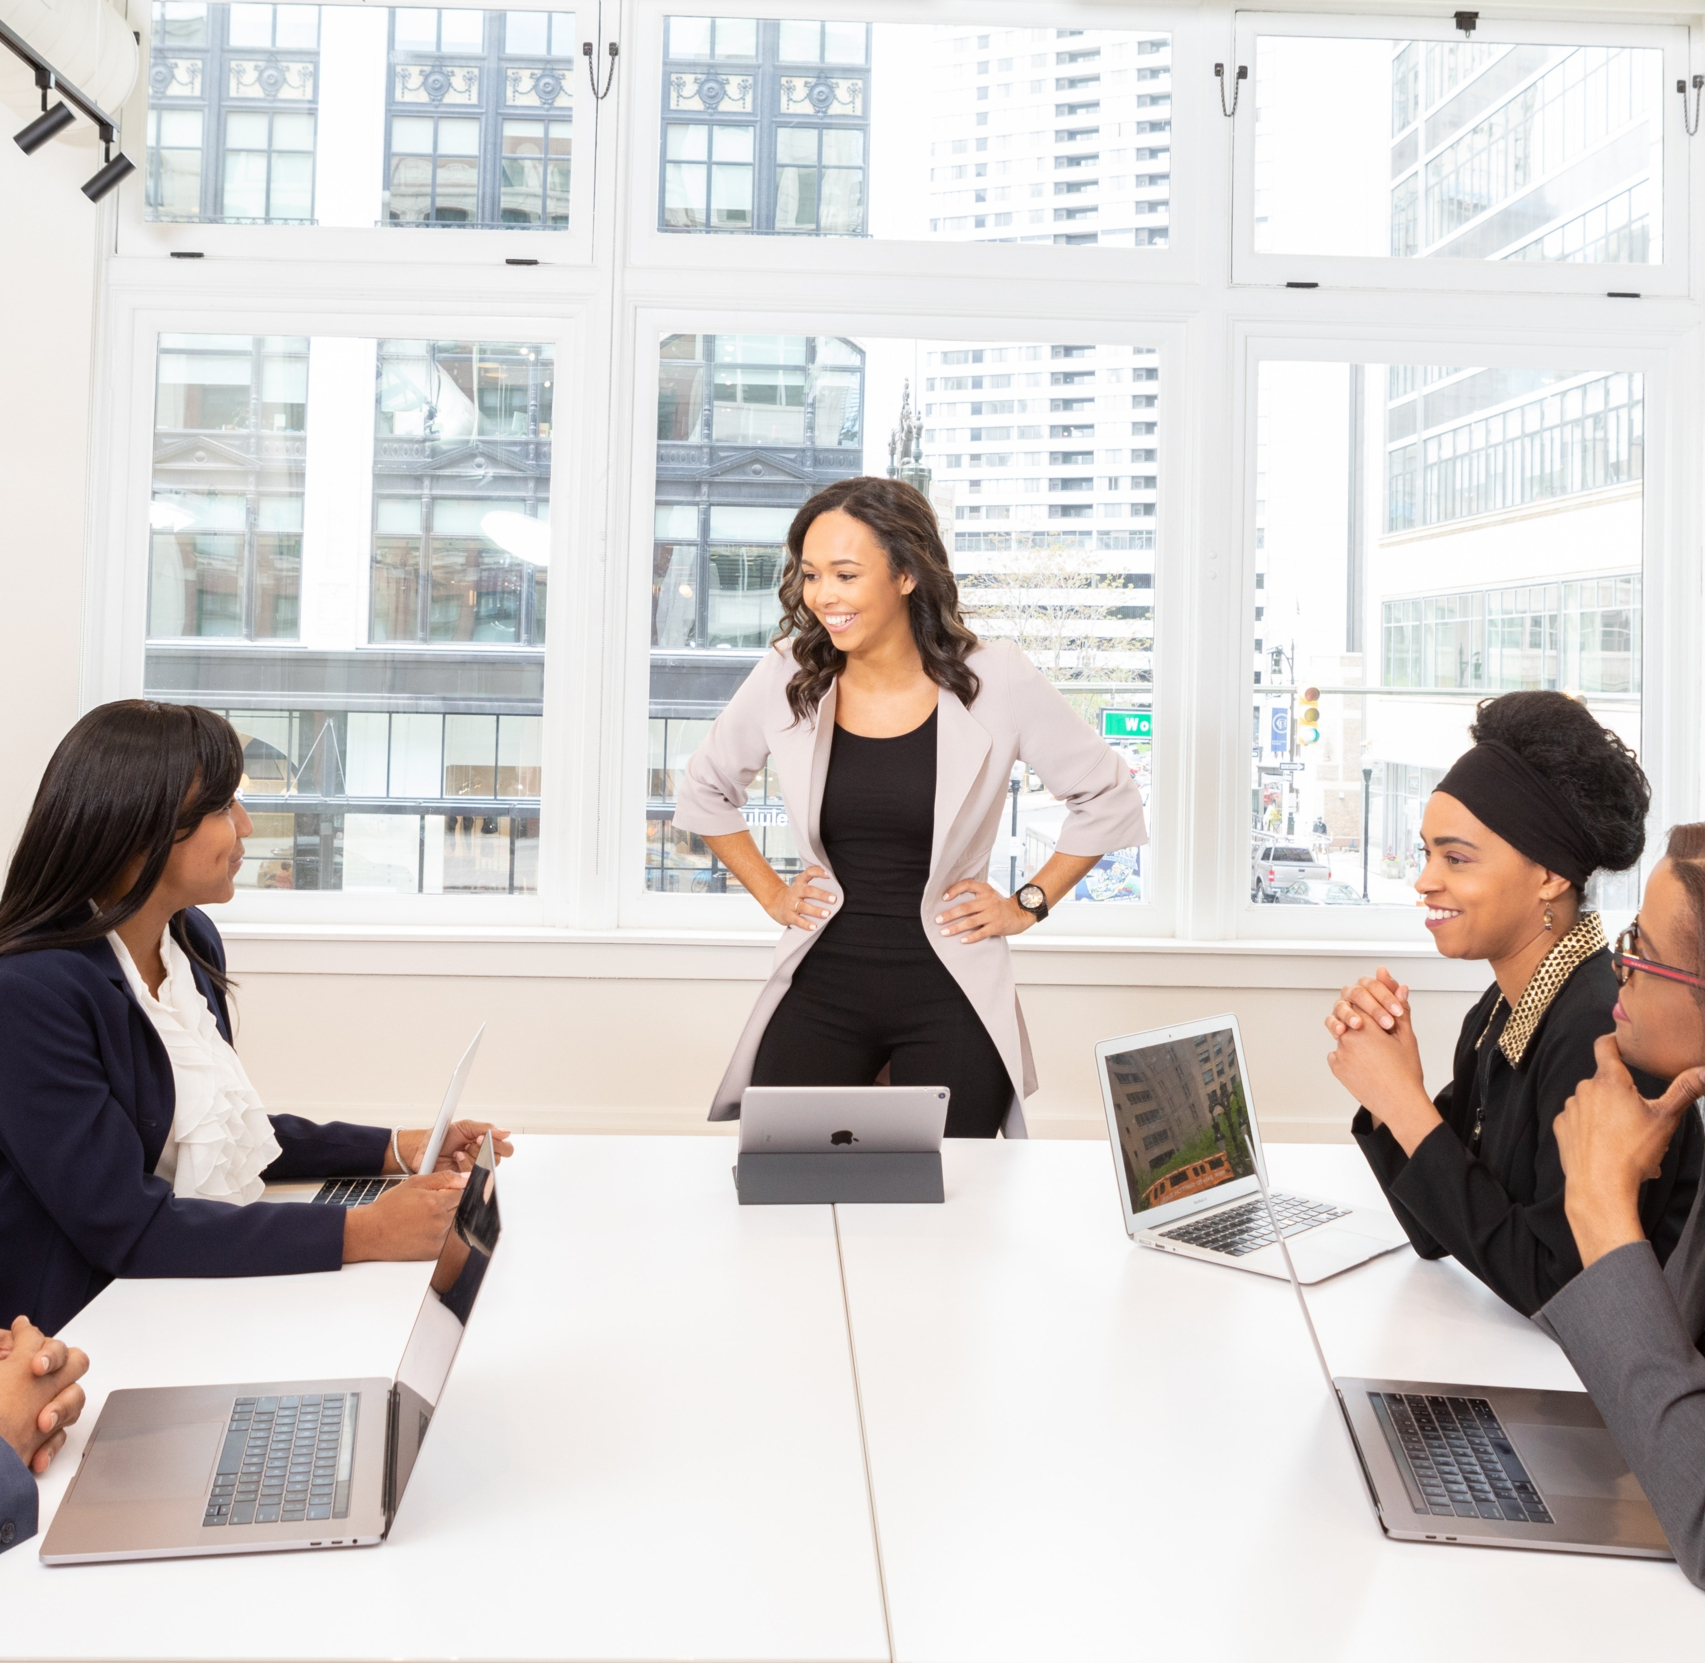 computers-discussion-employees-1367276